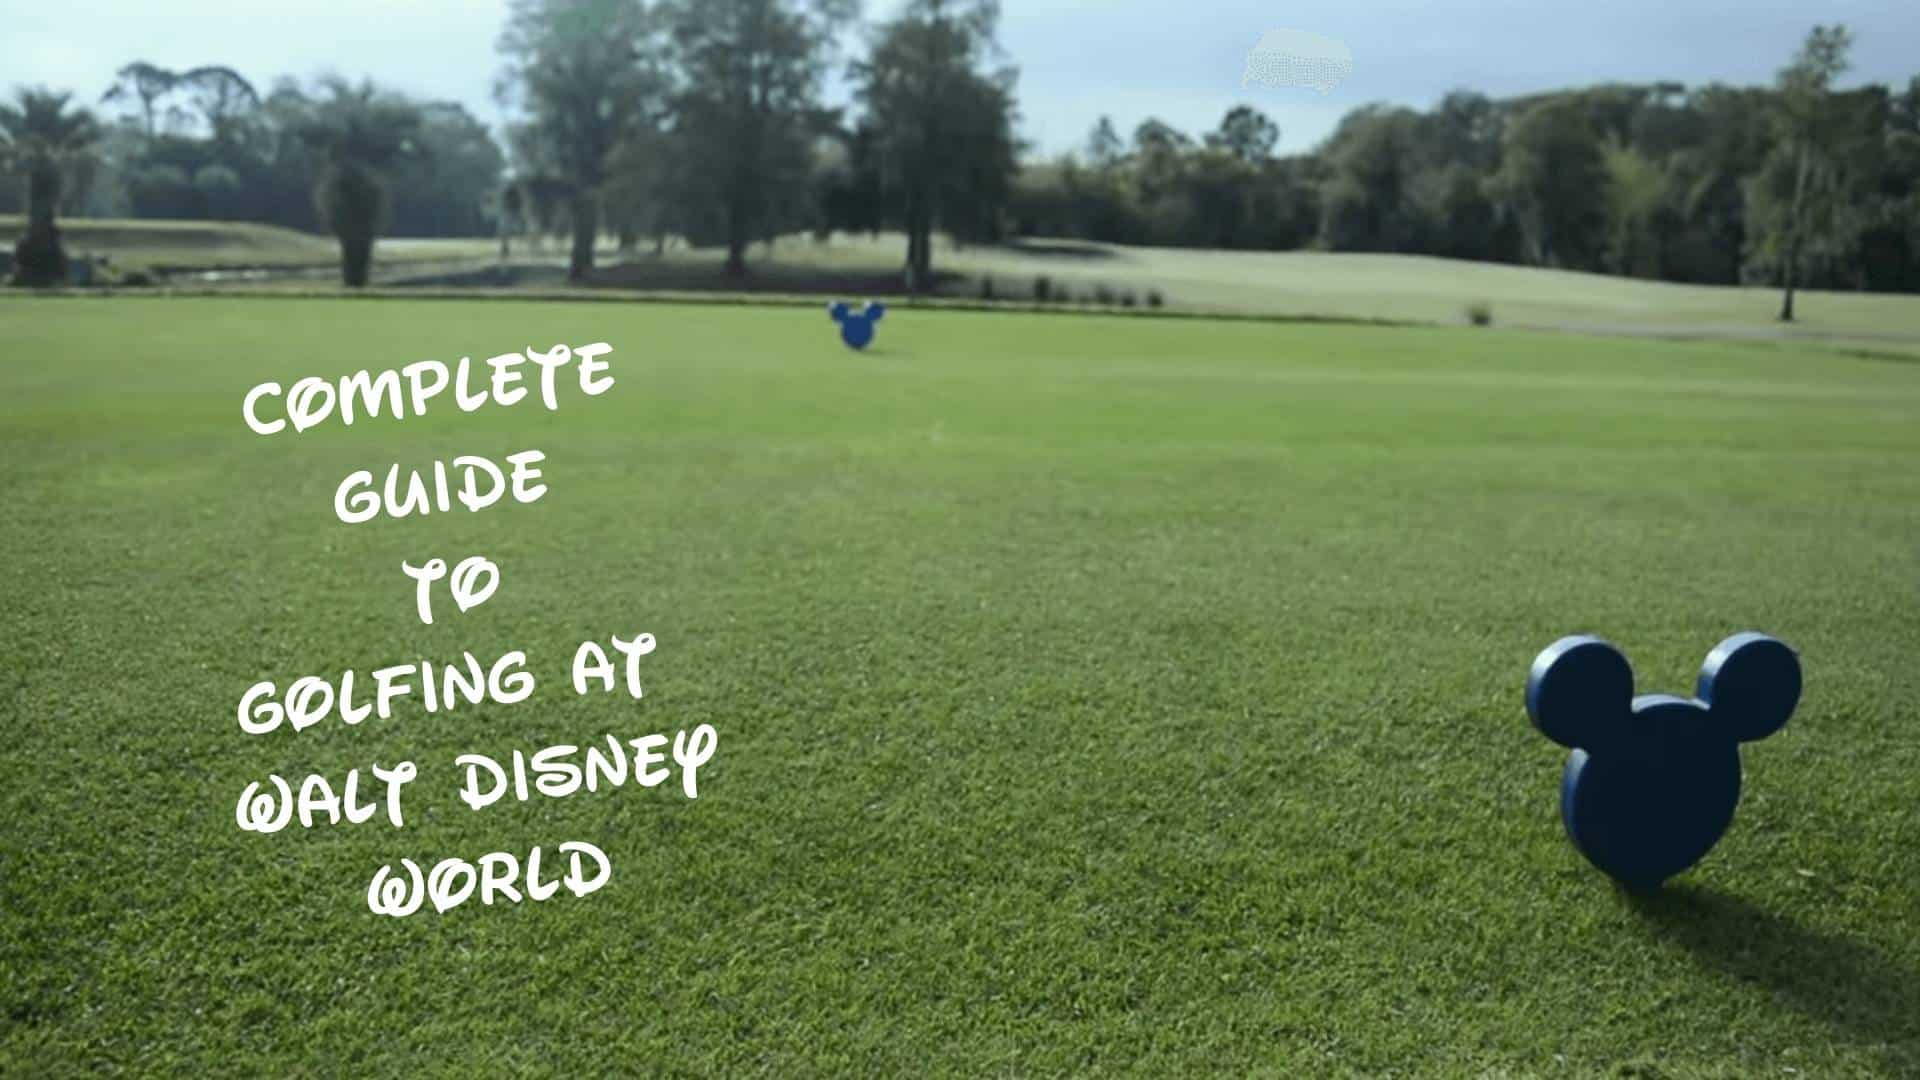 Complete Guide To Golfing At Walt Disney World Tips 1